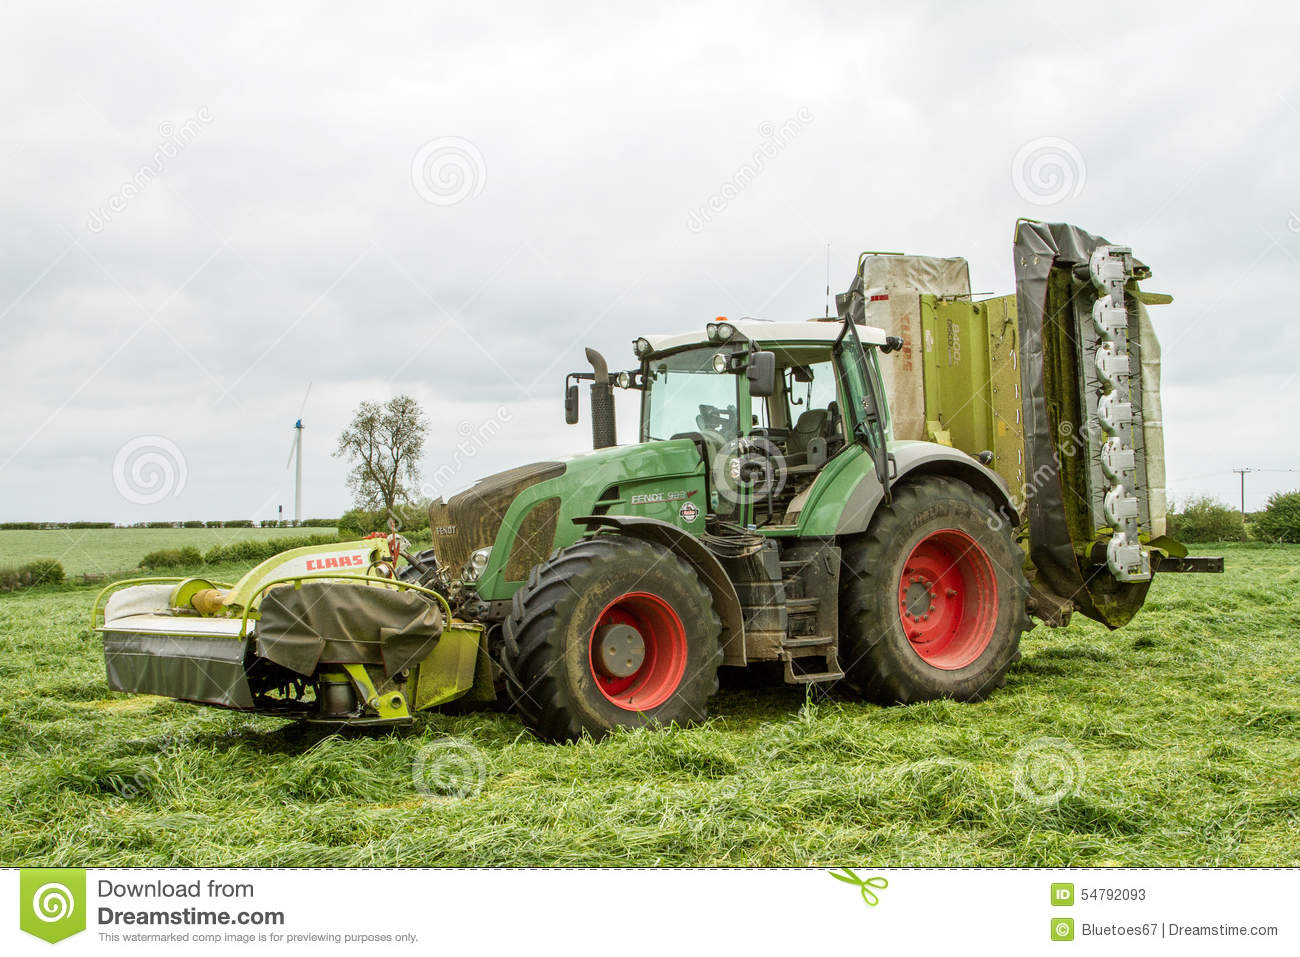 fendt gr nen traktor mit claas m hern auf dem silagegebiet redaktionelles stockfoto bild von. Black Bedroom Furniture Sets. Home Design Ideas